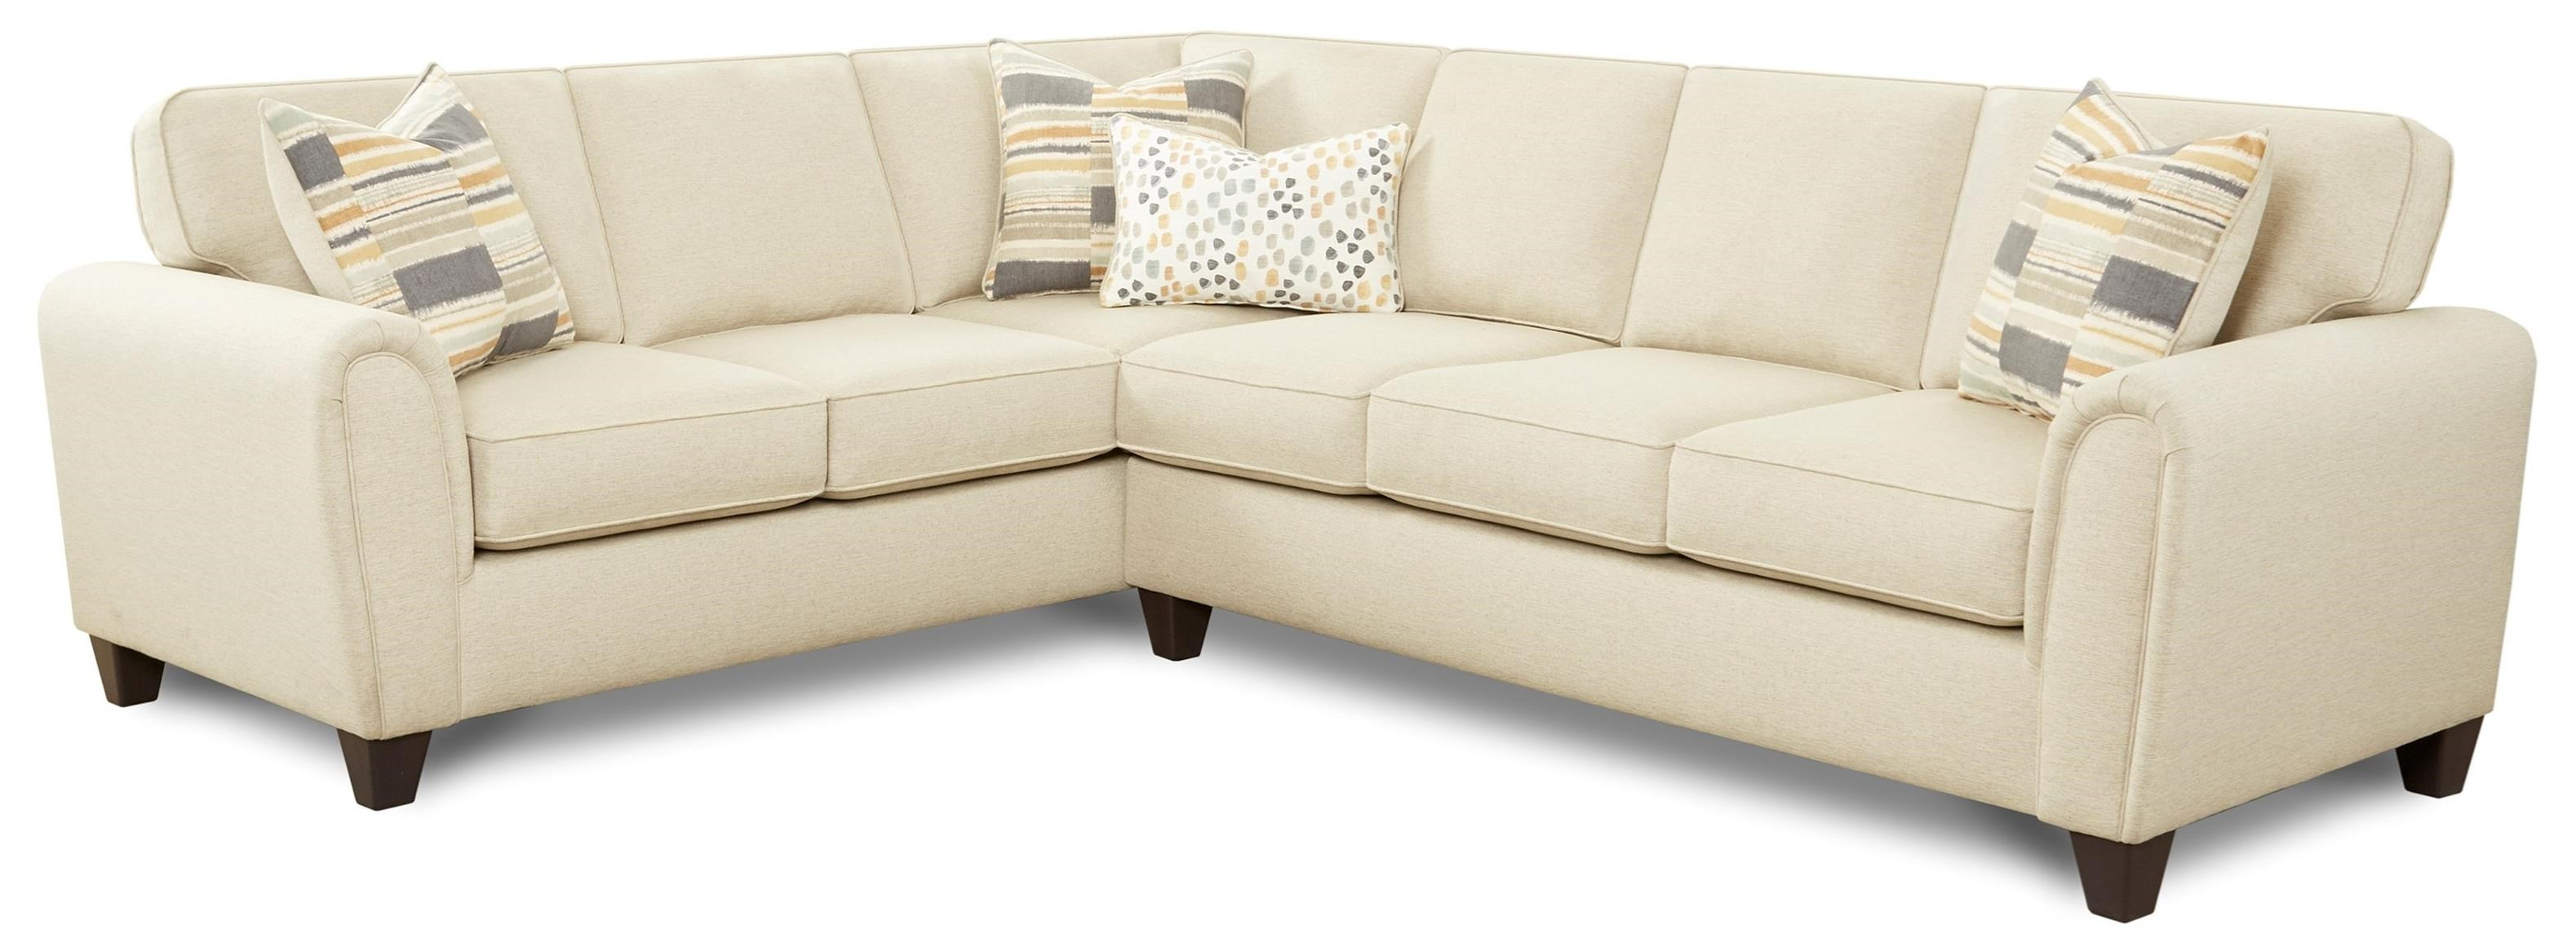 49-00 2-Piece L-Shape Sectional by Fusion Furniture at Prime Brothers Furniture